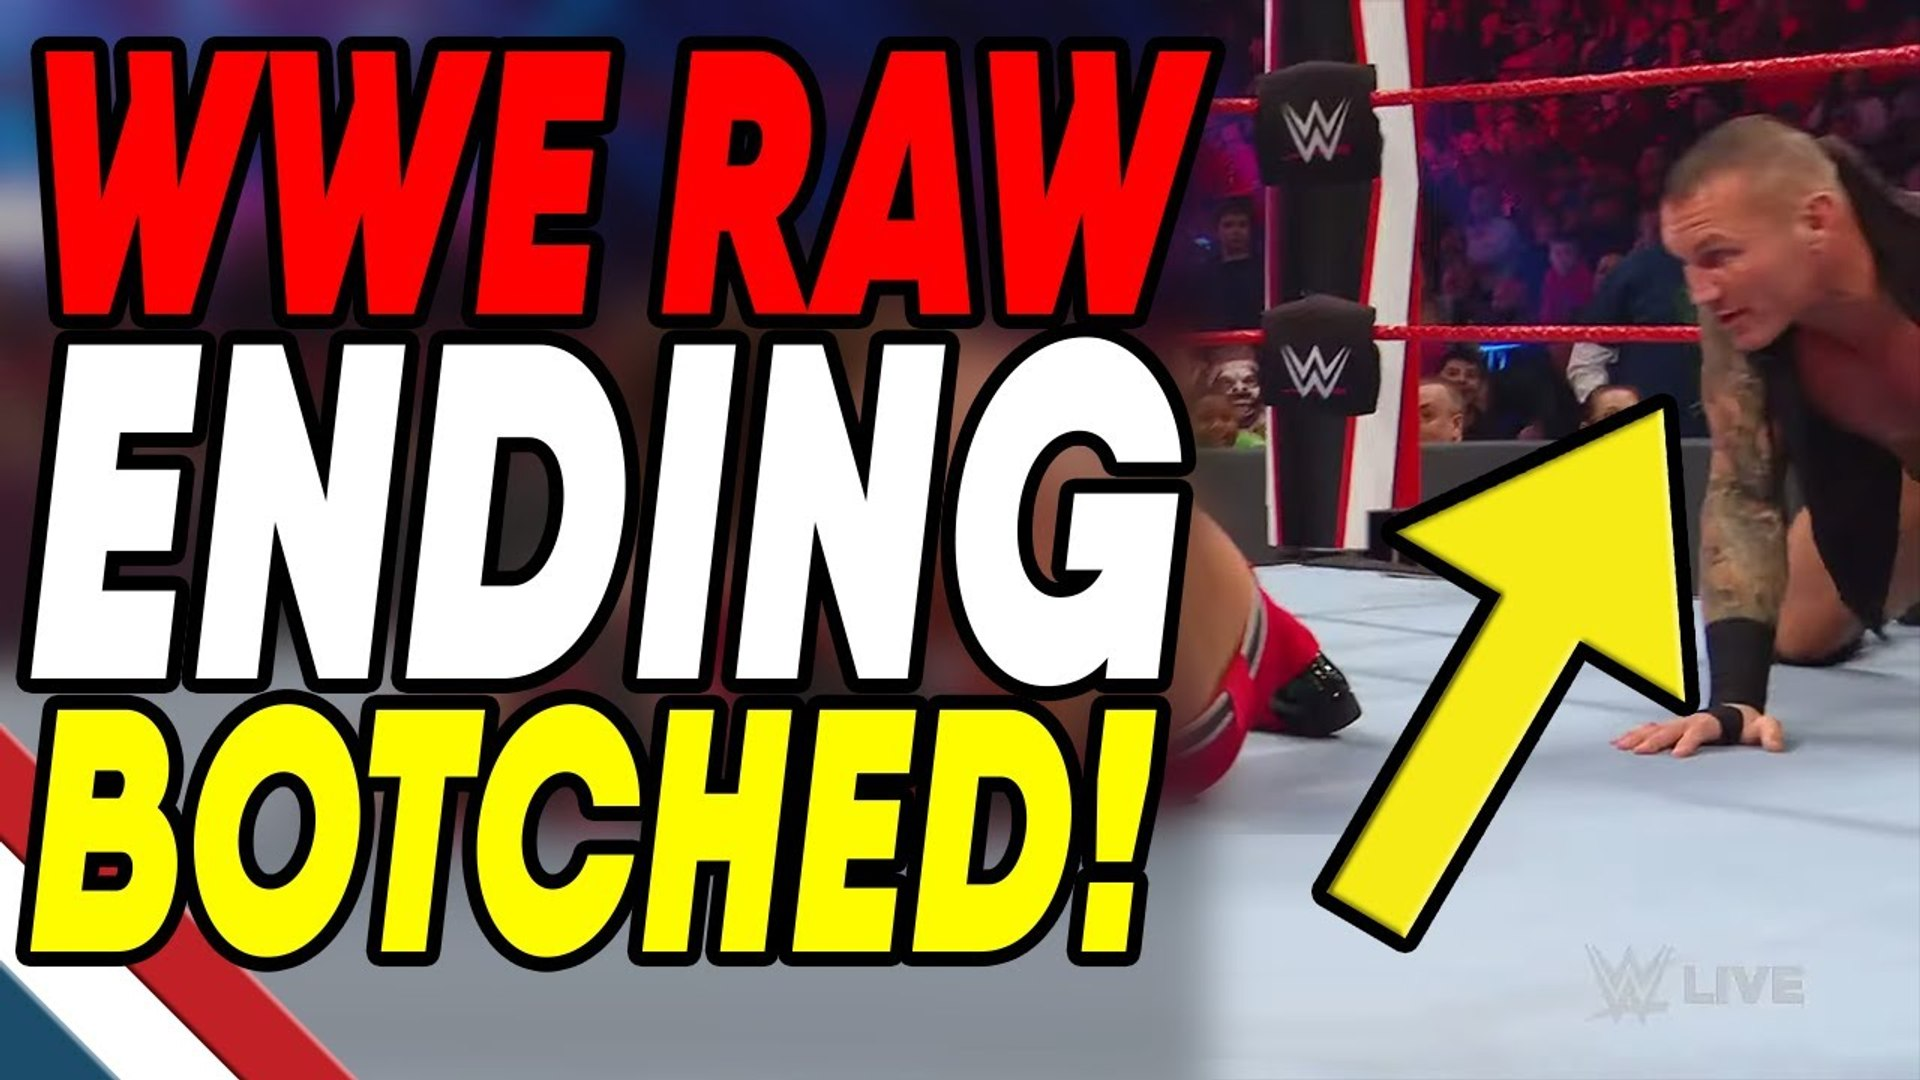 WWE NXT Stars Getting RELEASED! WWE Raw Ending BOTCHED! Review In About 4! WrestleTalk Dec. 2019